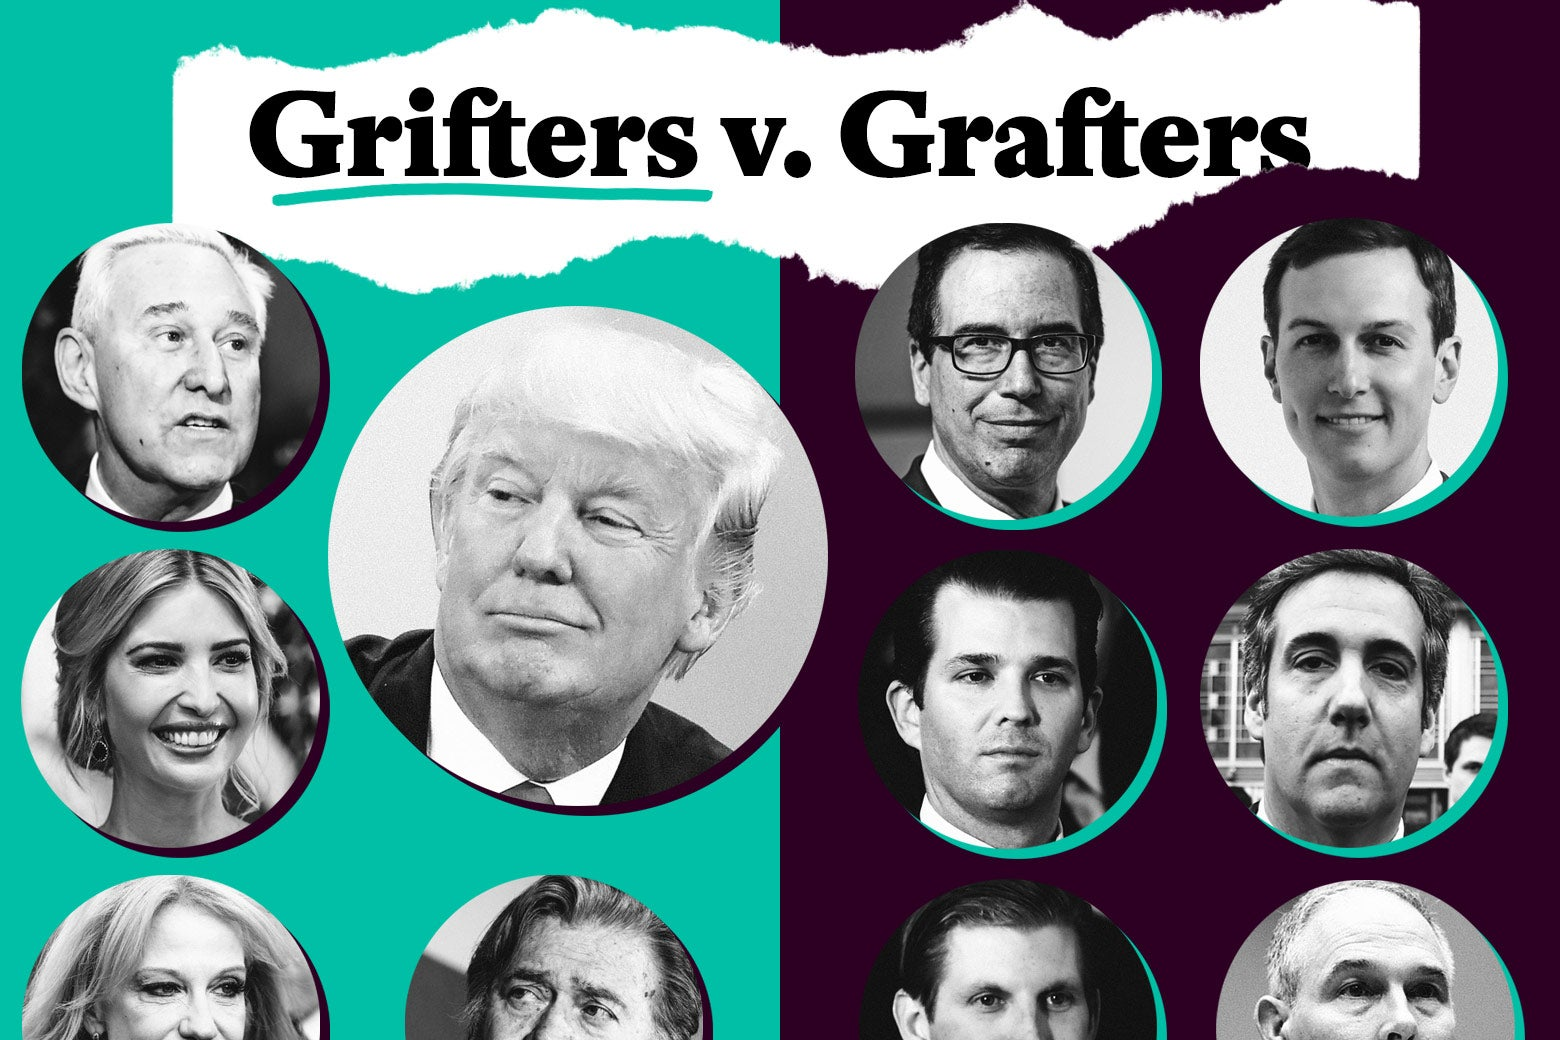 Chart showing grifters (Donald Trump, Ivanka Trump, Kellyanne Conway, Roger Stone, and Steve Bannon) on one side and grafters (Jared Kushner, Donald Trump, Jr., Eric Trump, Michael Cohen, Scott Pruitt, and Steve Mnuchin) on the other.